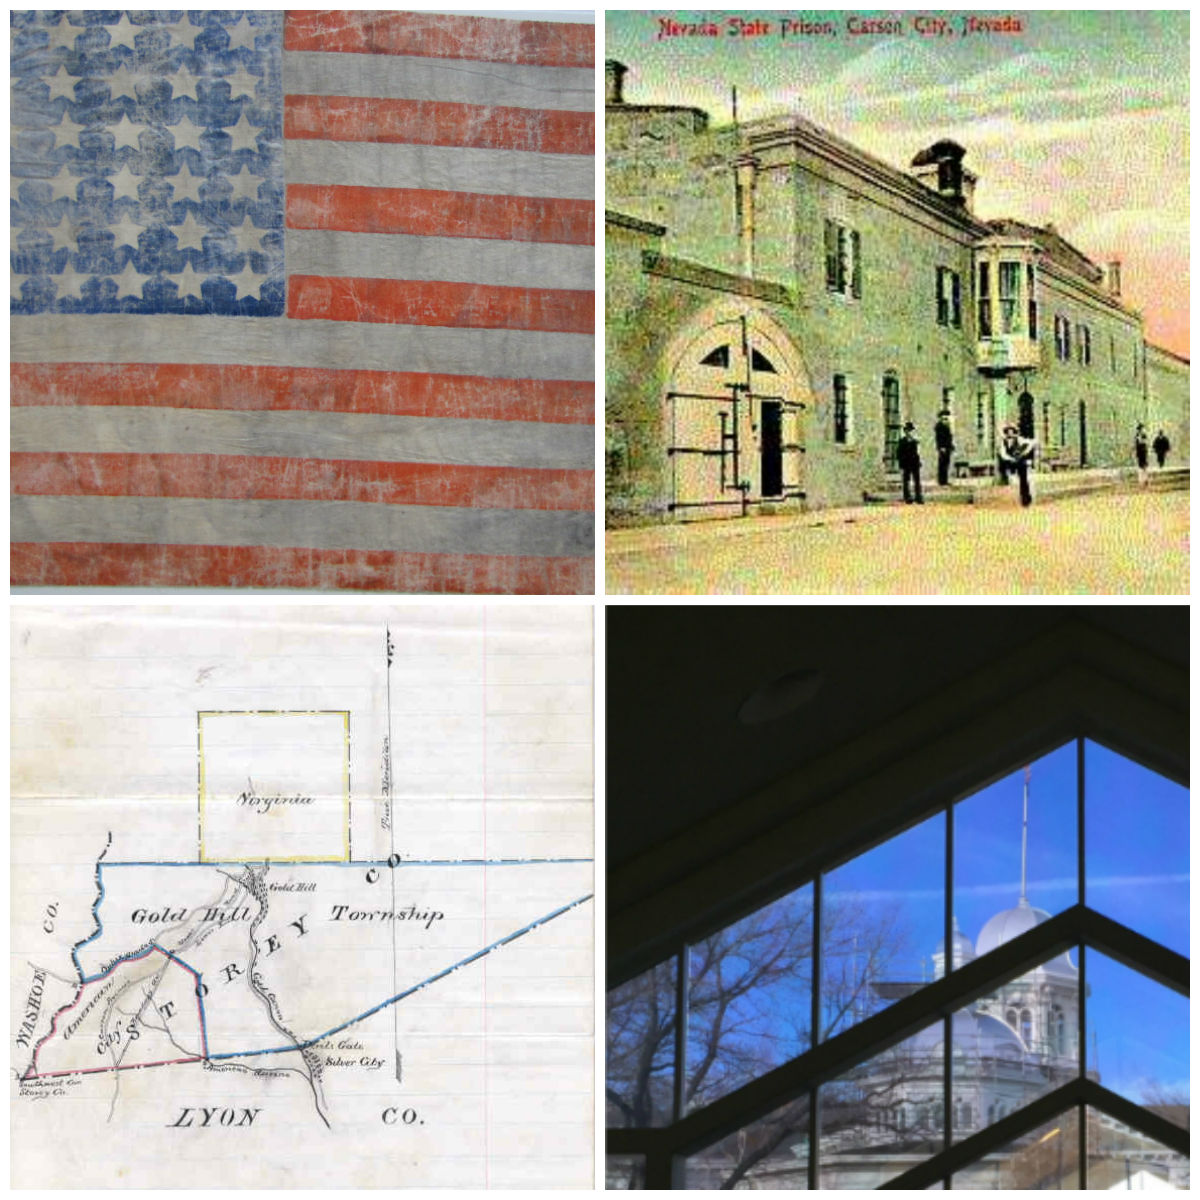 Images of american flag, prison cards, and state capital building through the Archives window